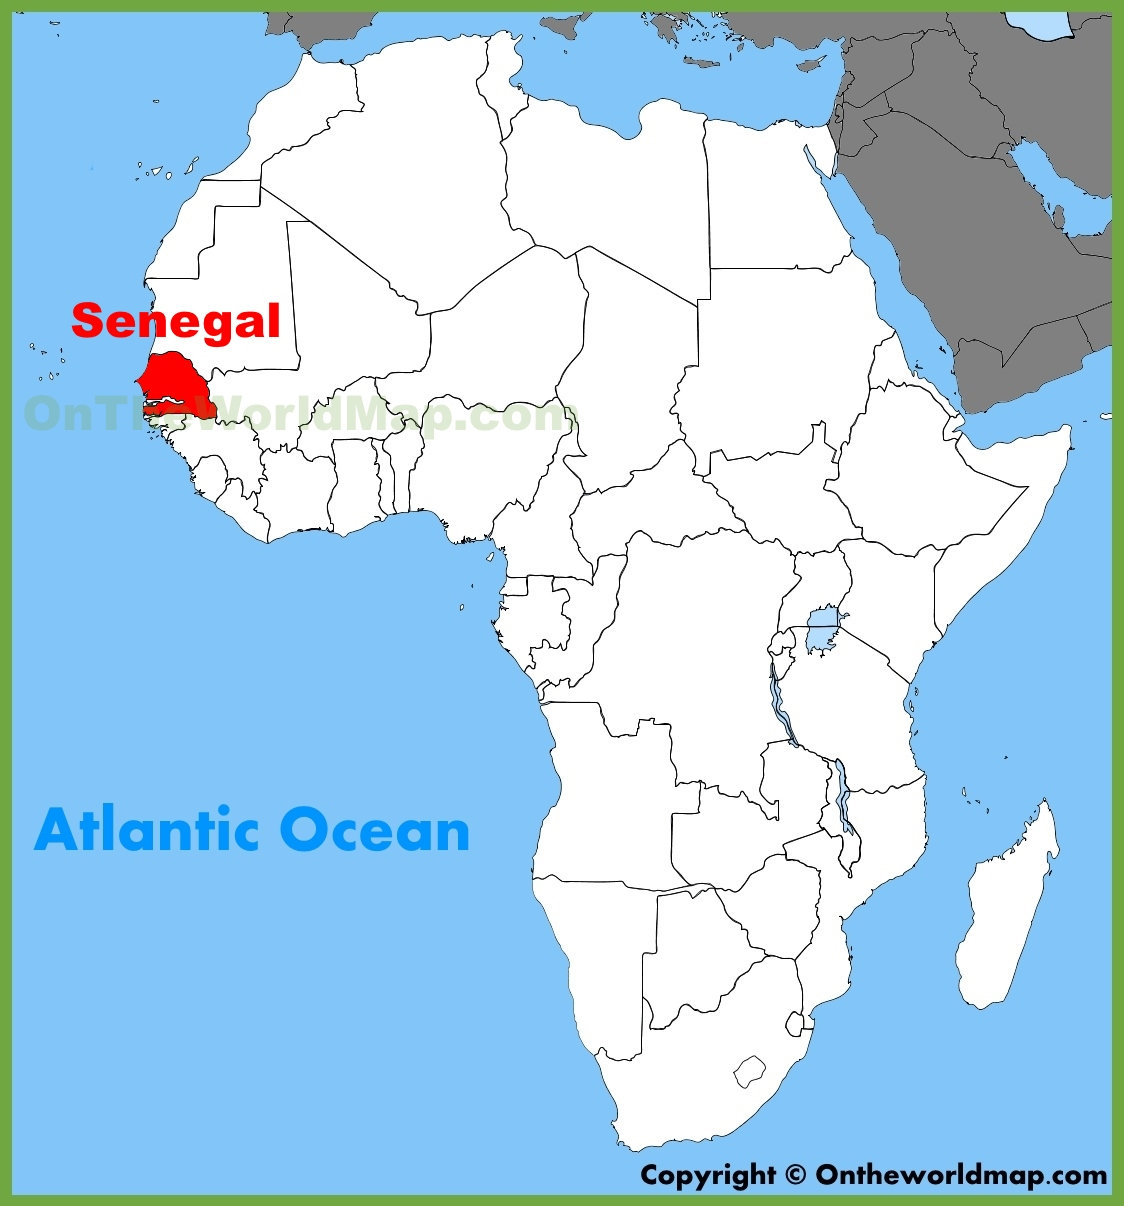 Senegal Africa Map Senegal location on the Africa map